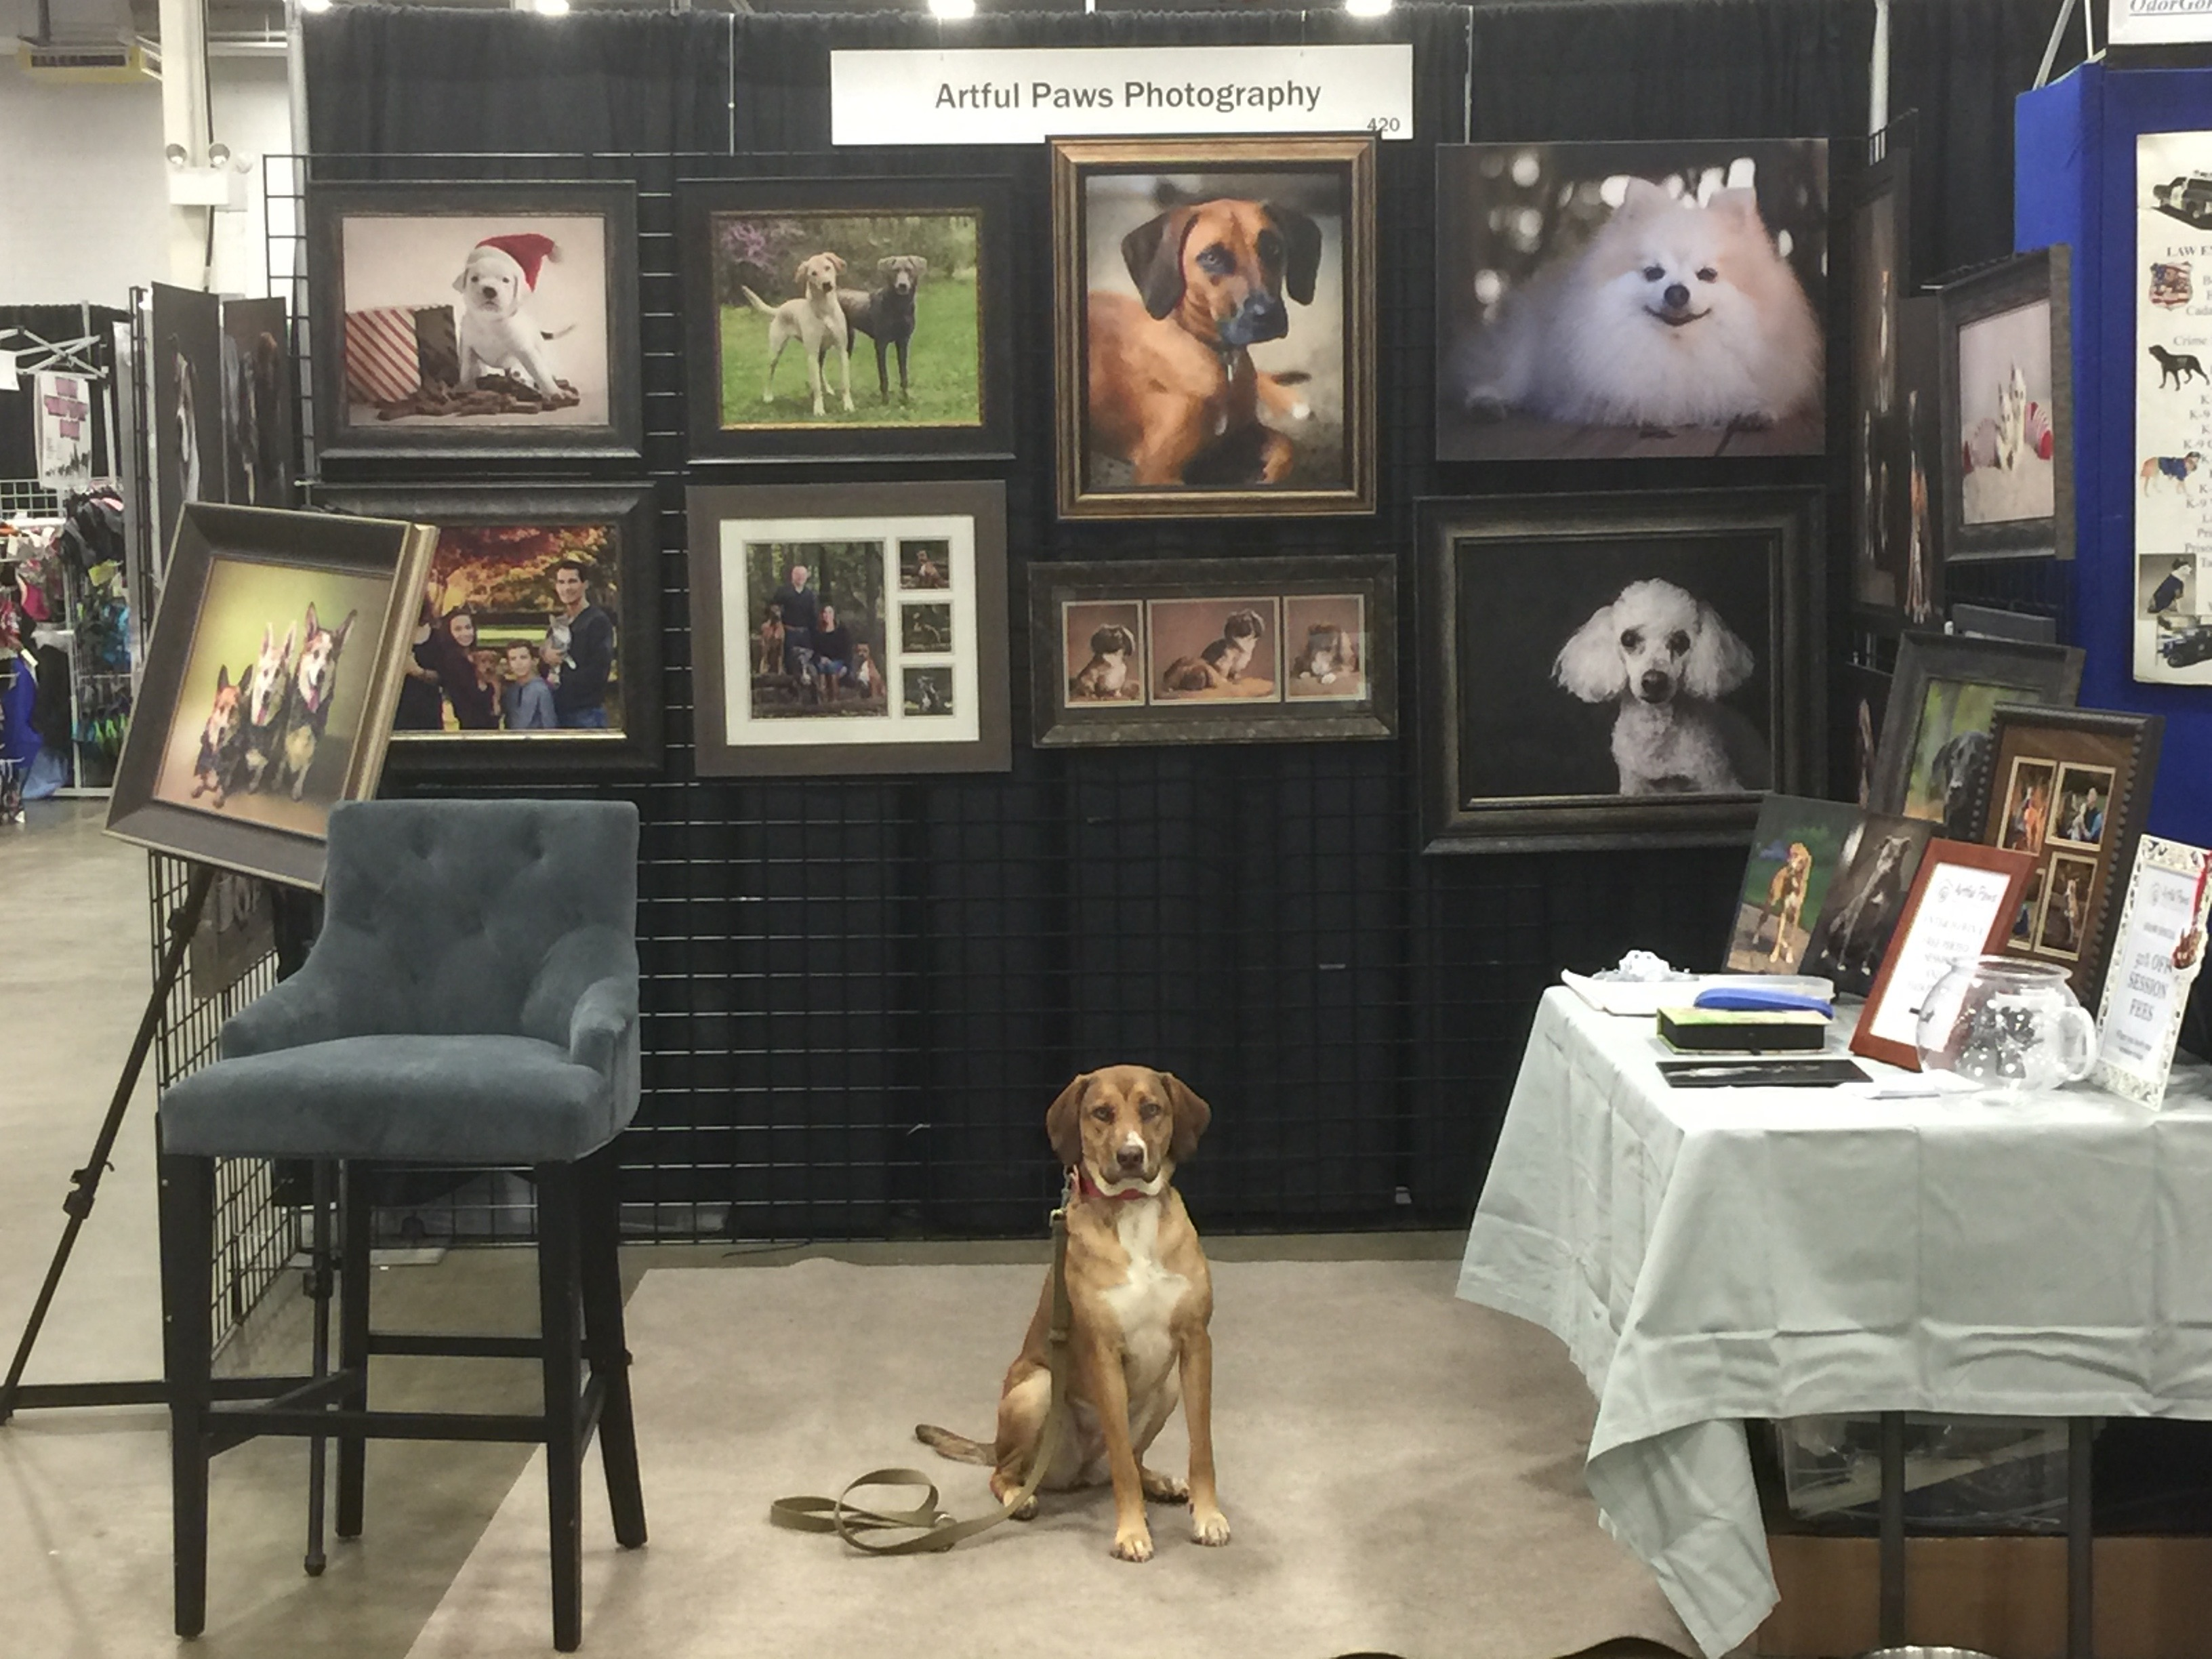 artful-paws-photography-booth-super-pet-expo